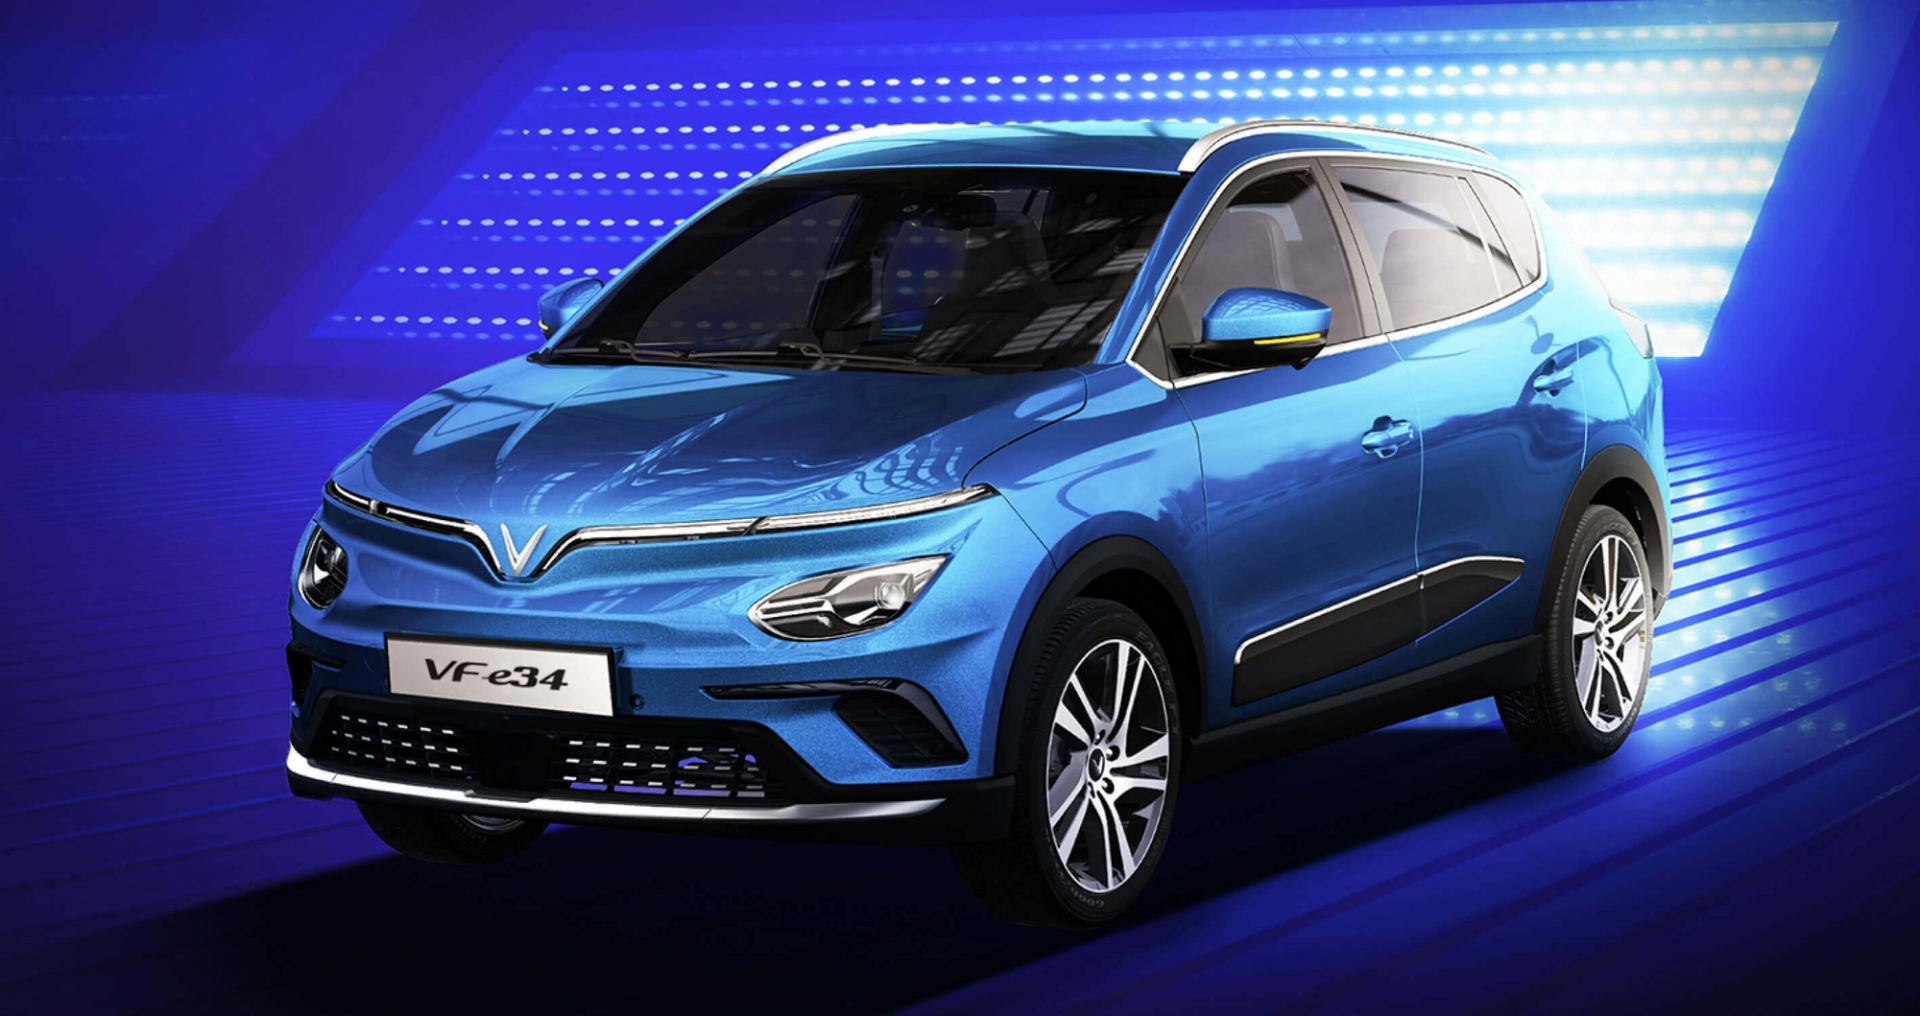 Check out the popular car models coming to Vietnamese customers in the near future 1